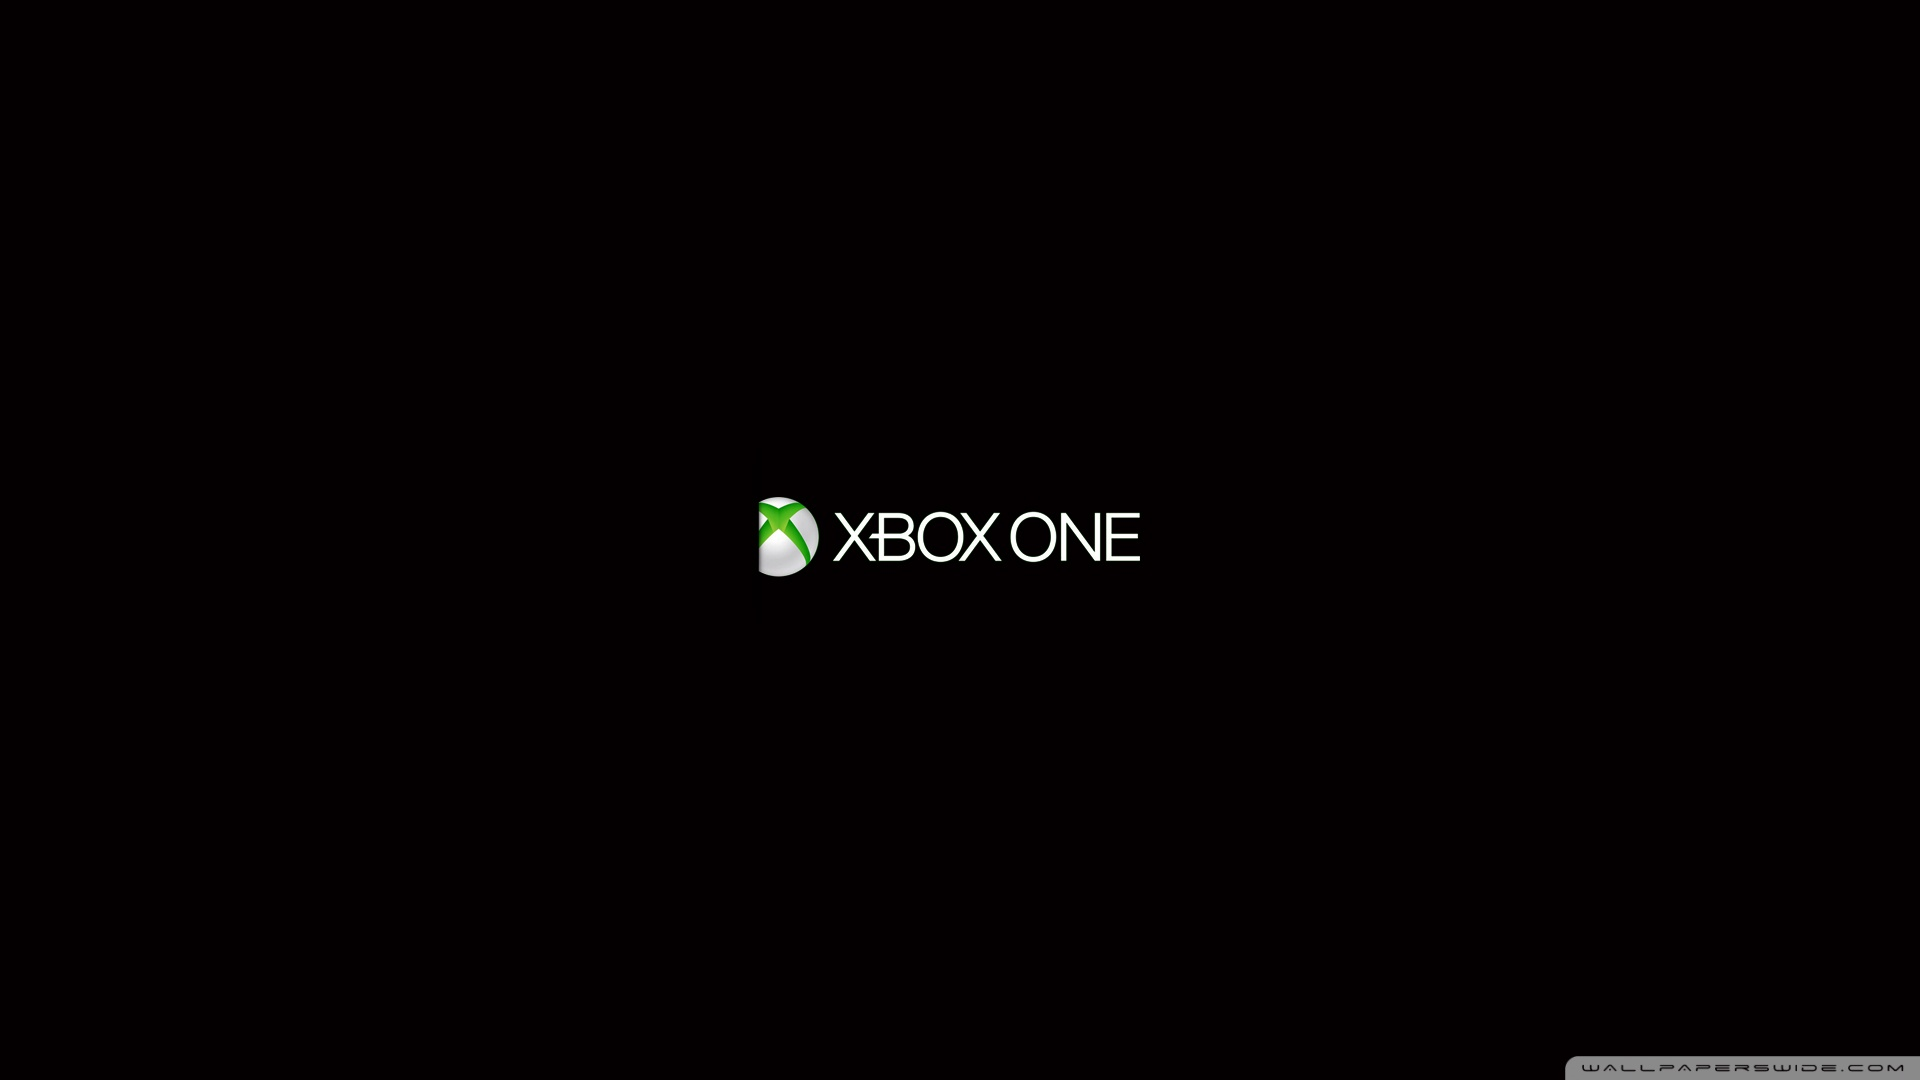 Xbox One Wallpapers In 1080p Xbox One Wallpaper 1080p   Viewin 1920x1080